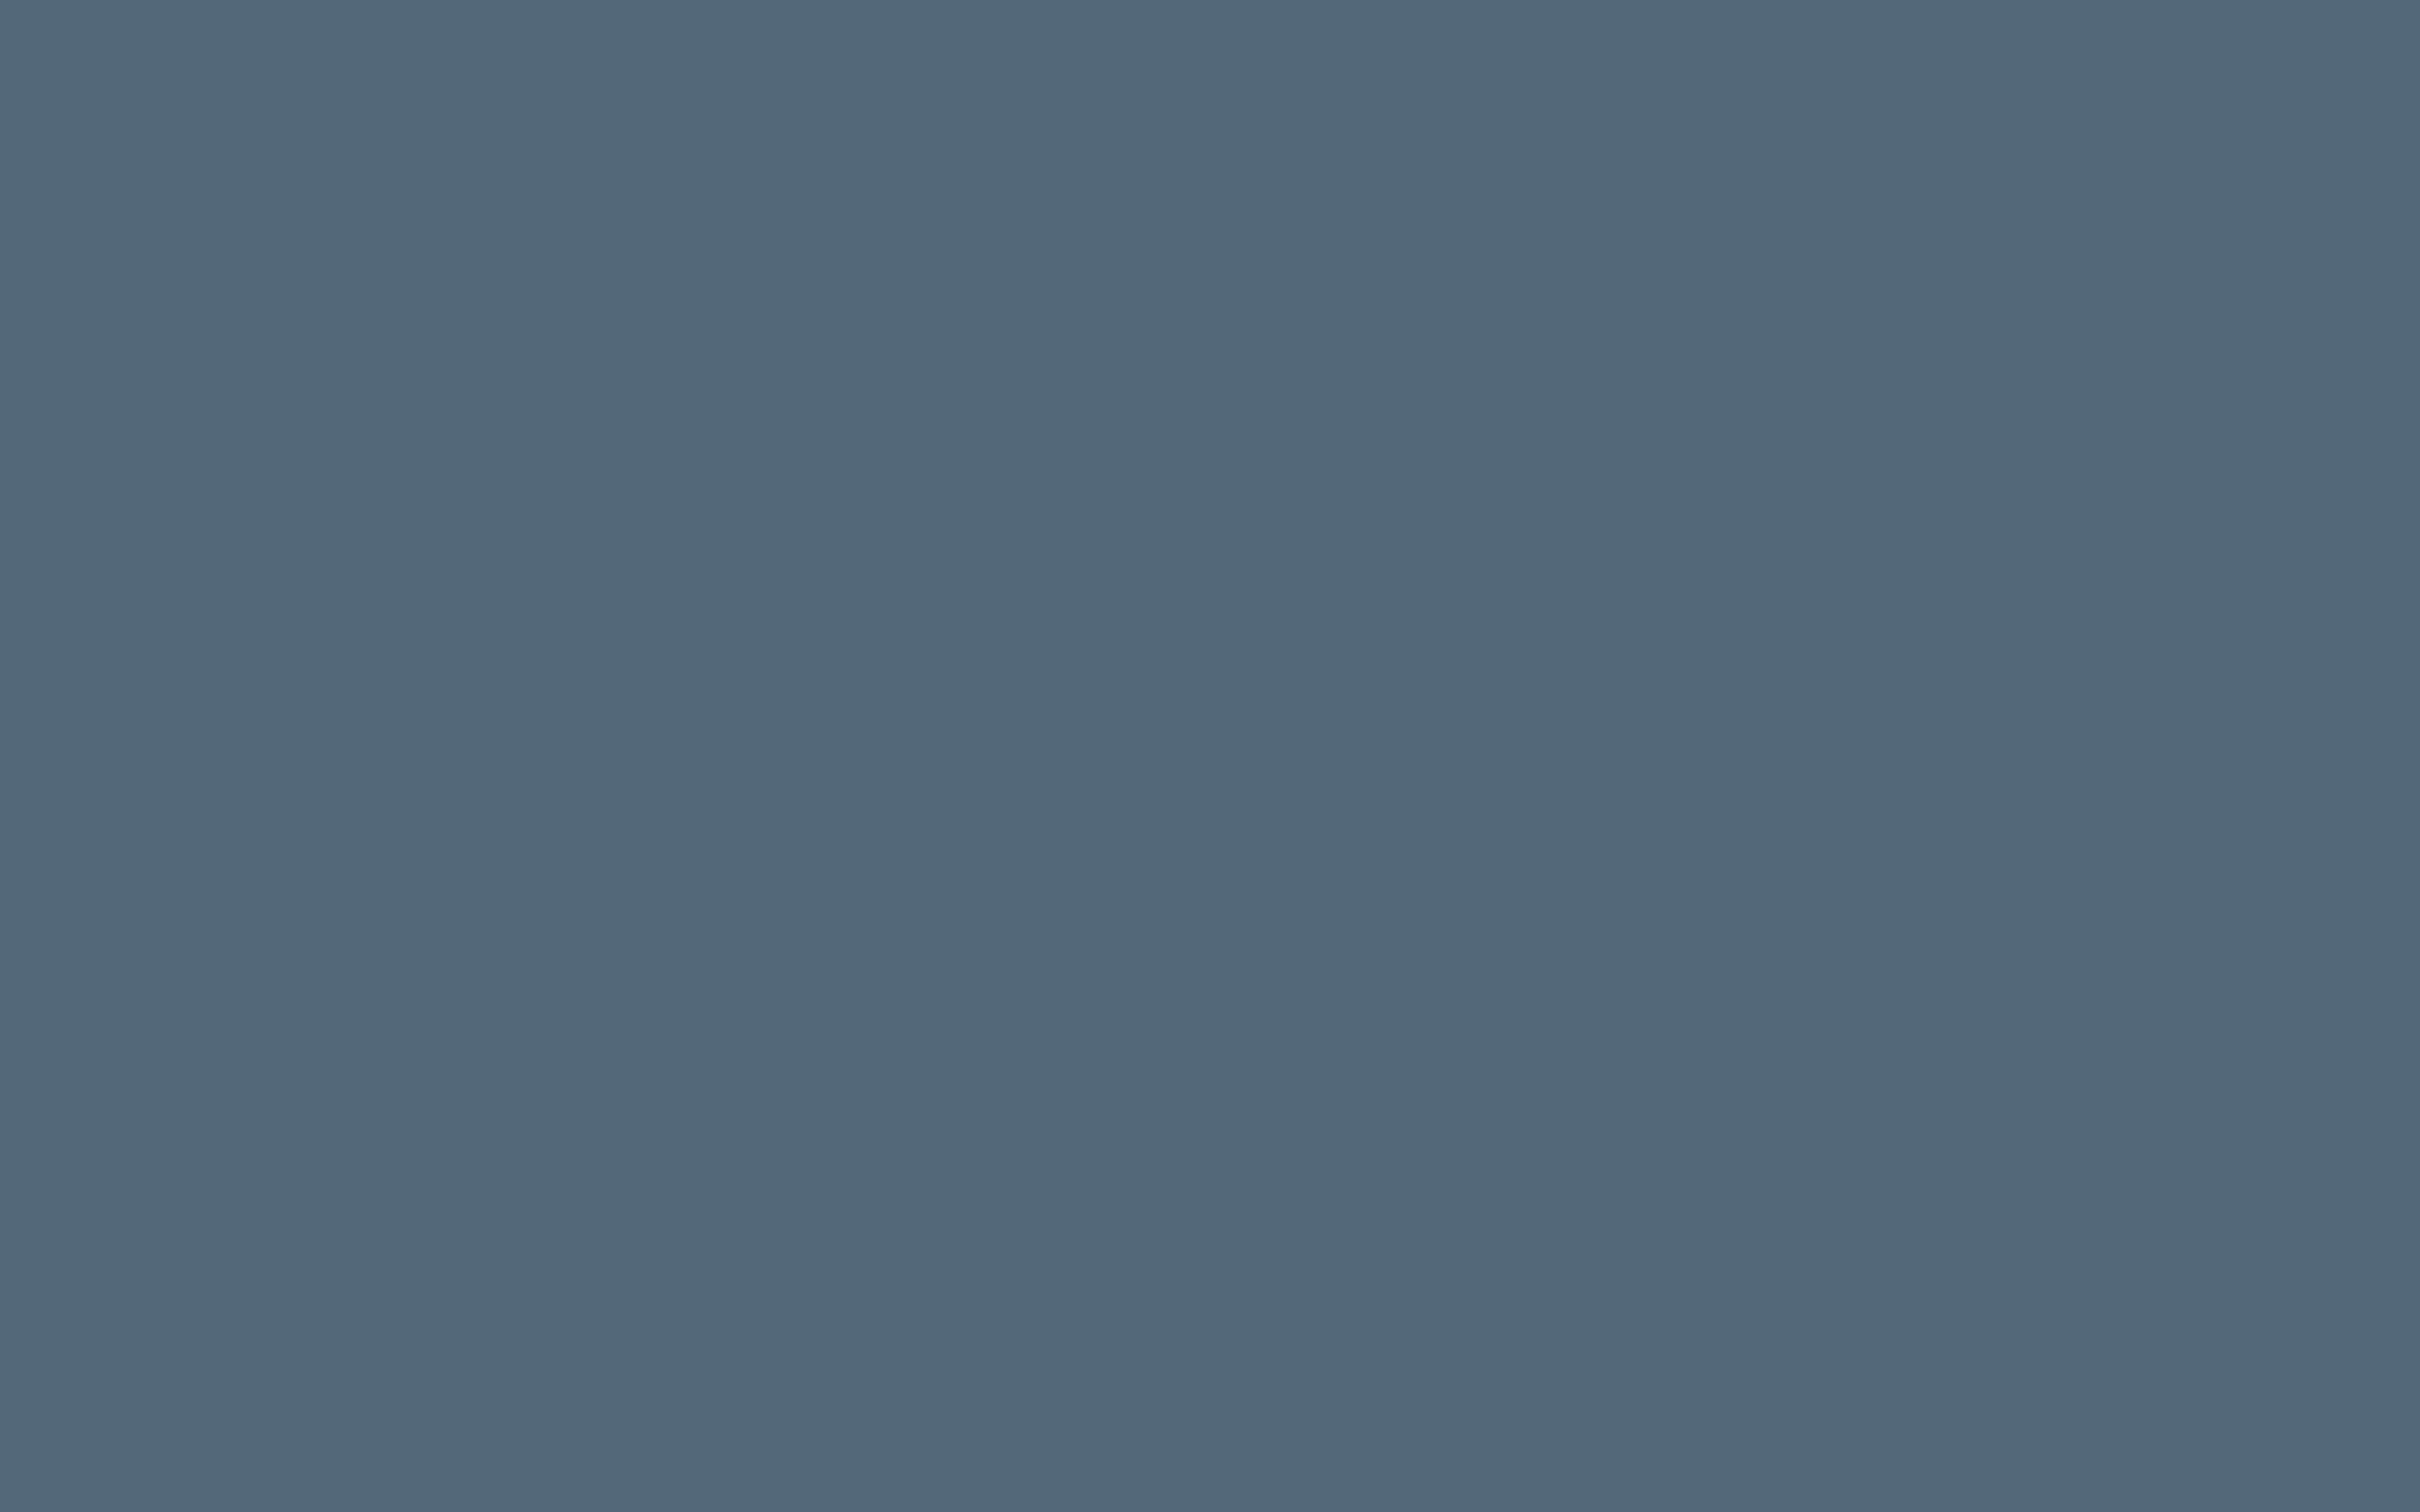 2560x1600 Paynes Grey Solid Color Background